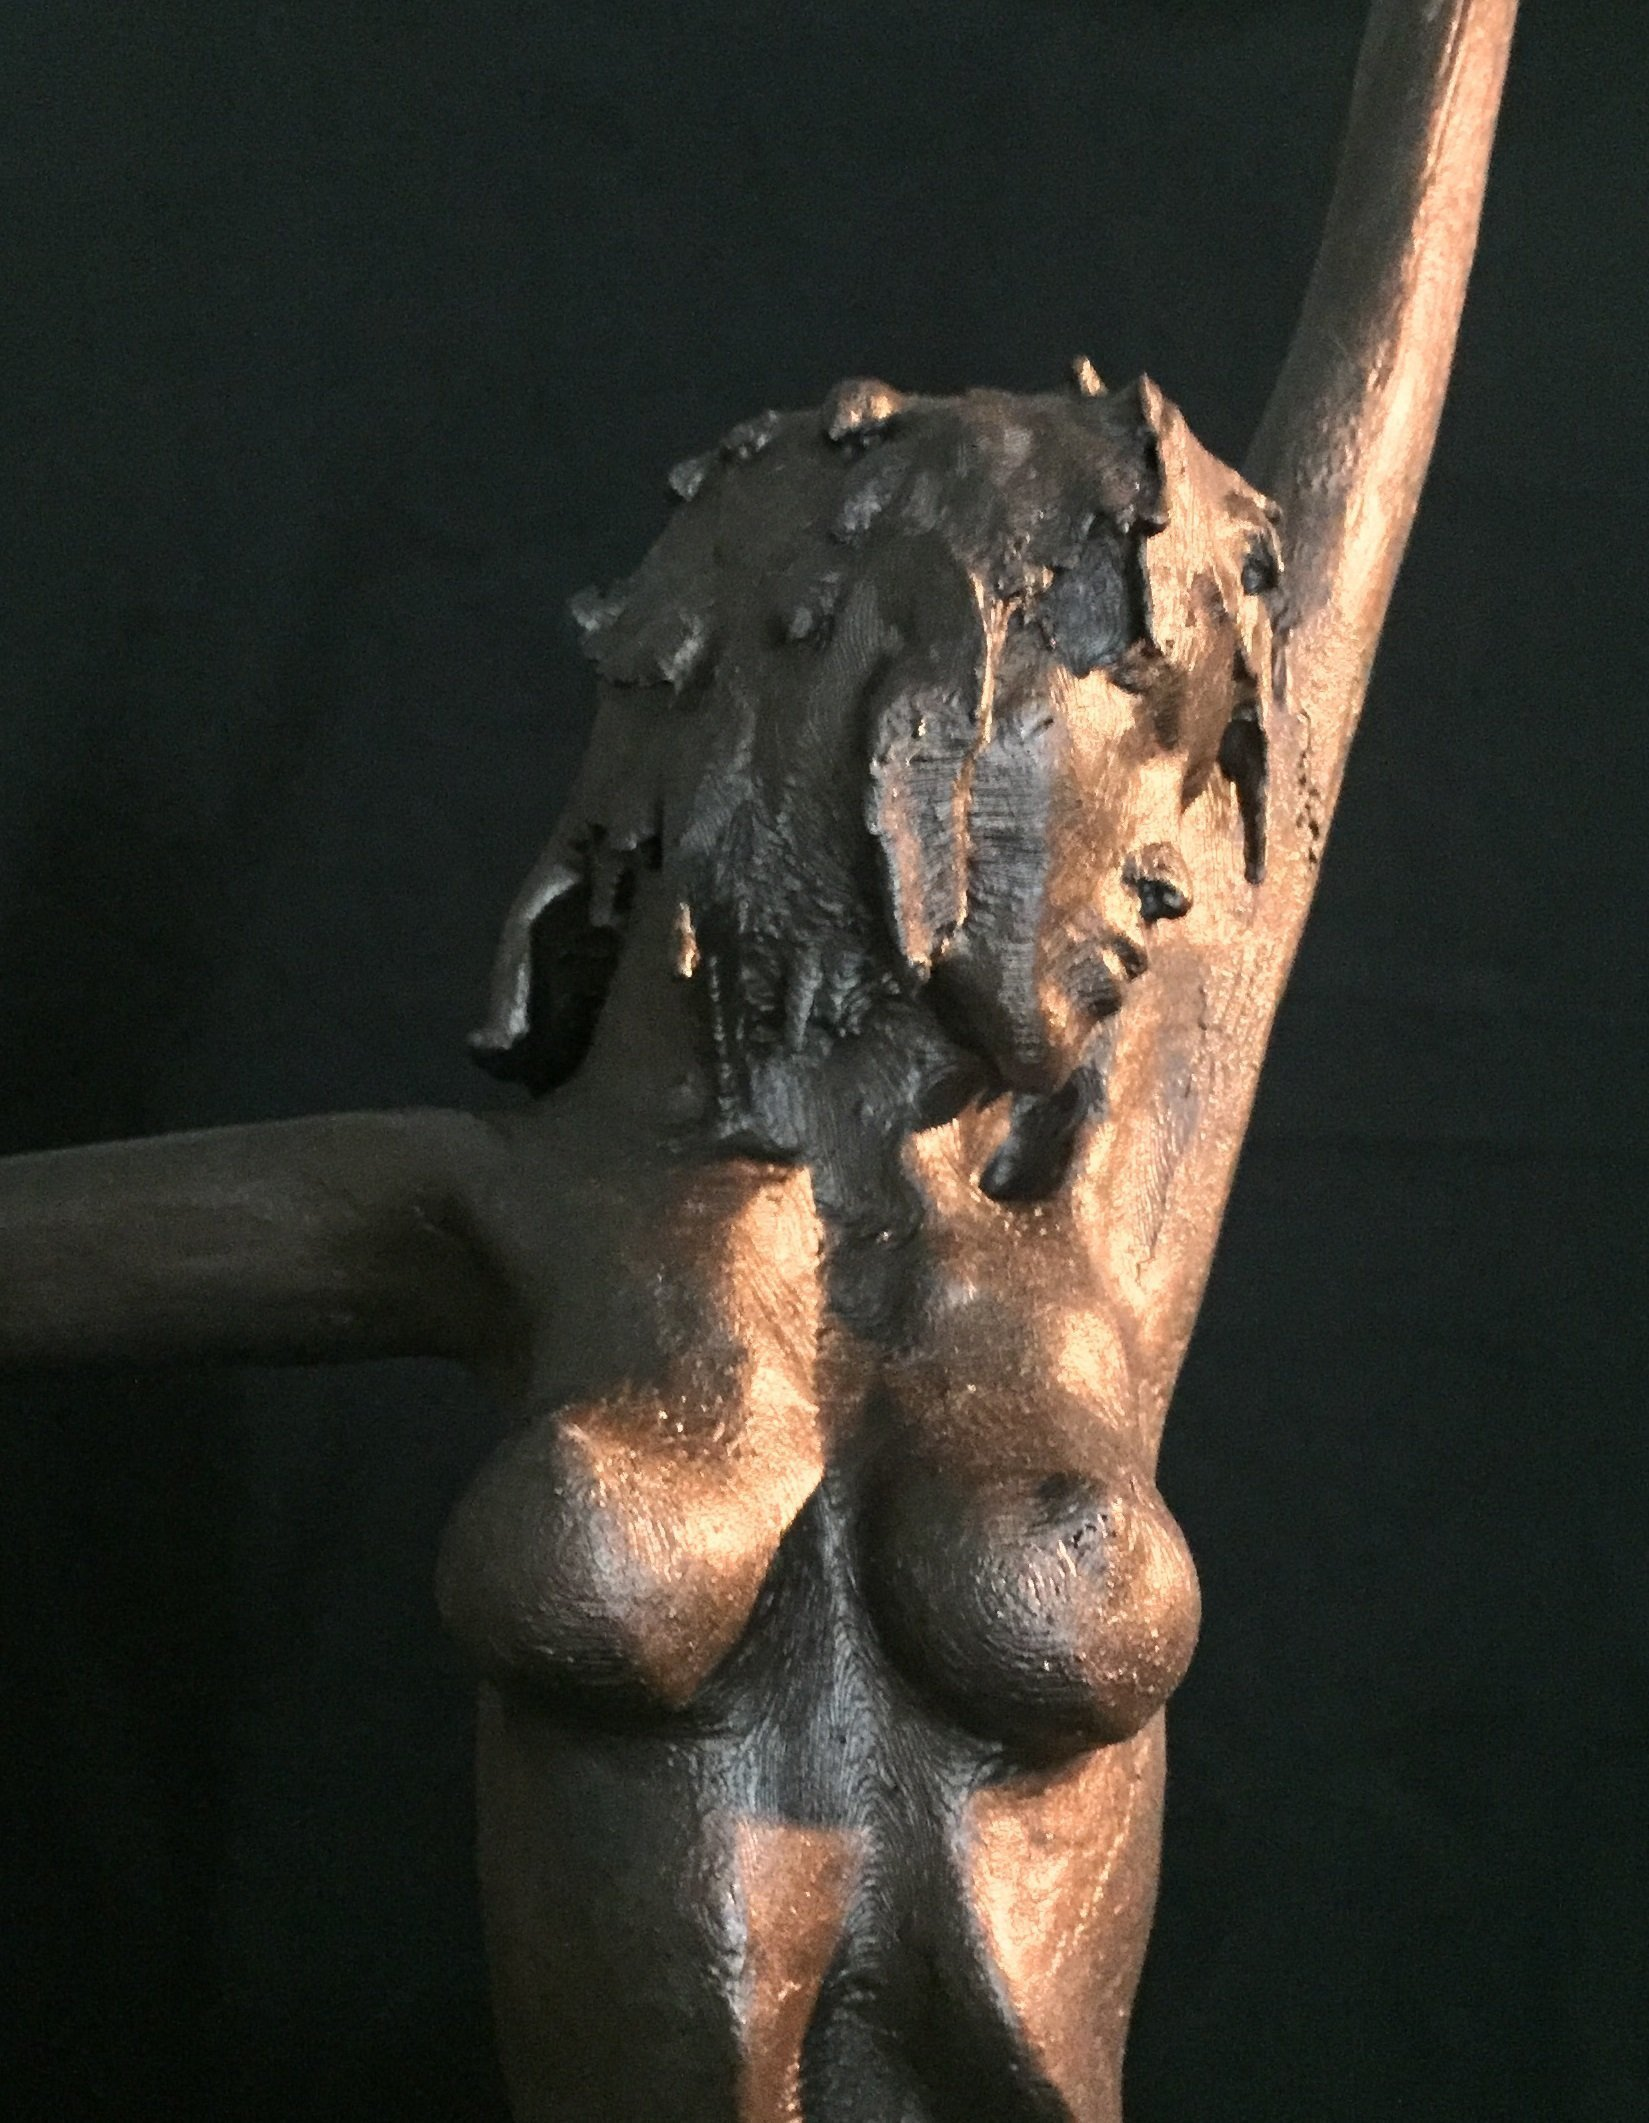 James Johnson: 'RAIN 2nd edition', 2020 Other Sculpture, Nudes. She was created using a cold cast method where bronze powder is incorporated into another media.  The patina is created using liver of sulfur.  Limited edition of 150 with an artistaEURtms mark, date, and number.  Each piece may appear slightly different with variations. ...